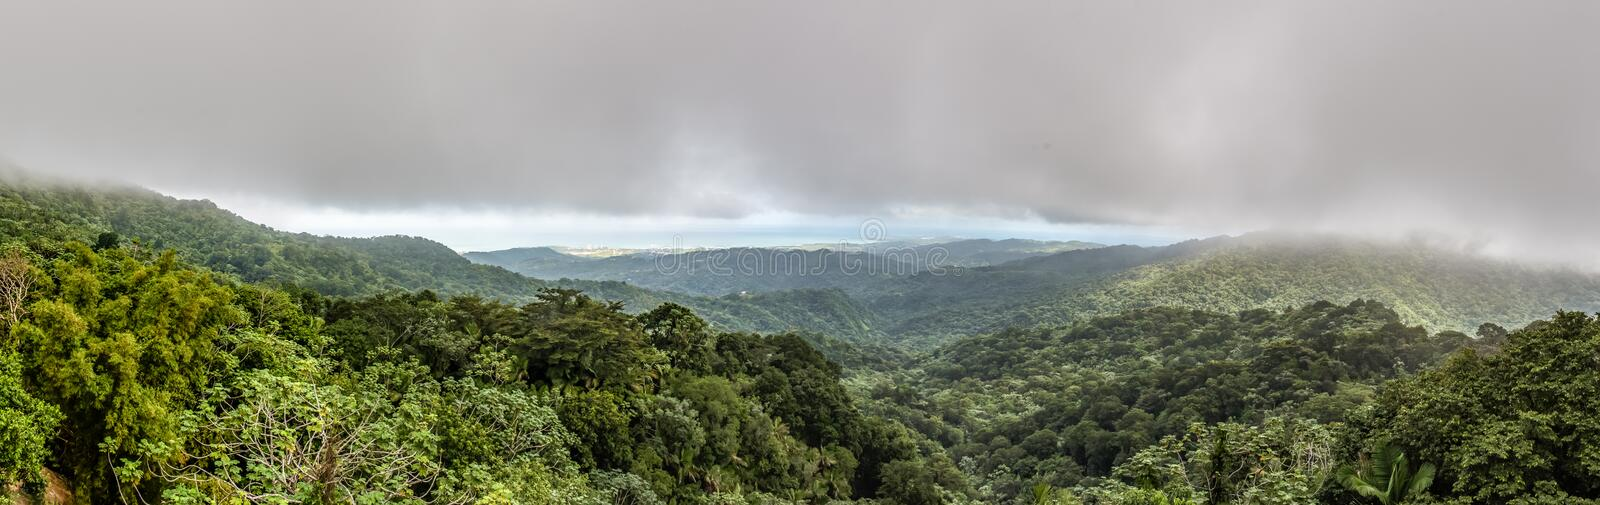 Panoramic view of the El Yunque rainforest. With a storm hovering over the mountains royalty free stock photo